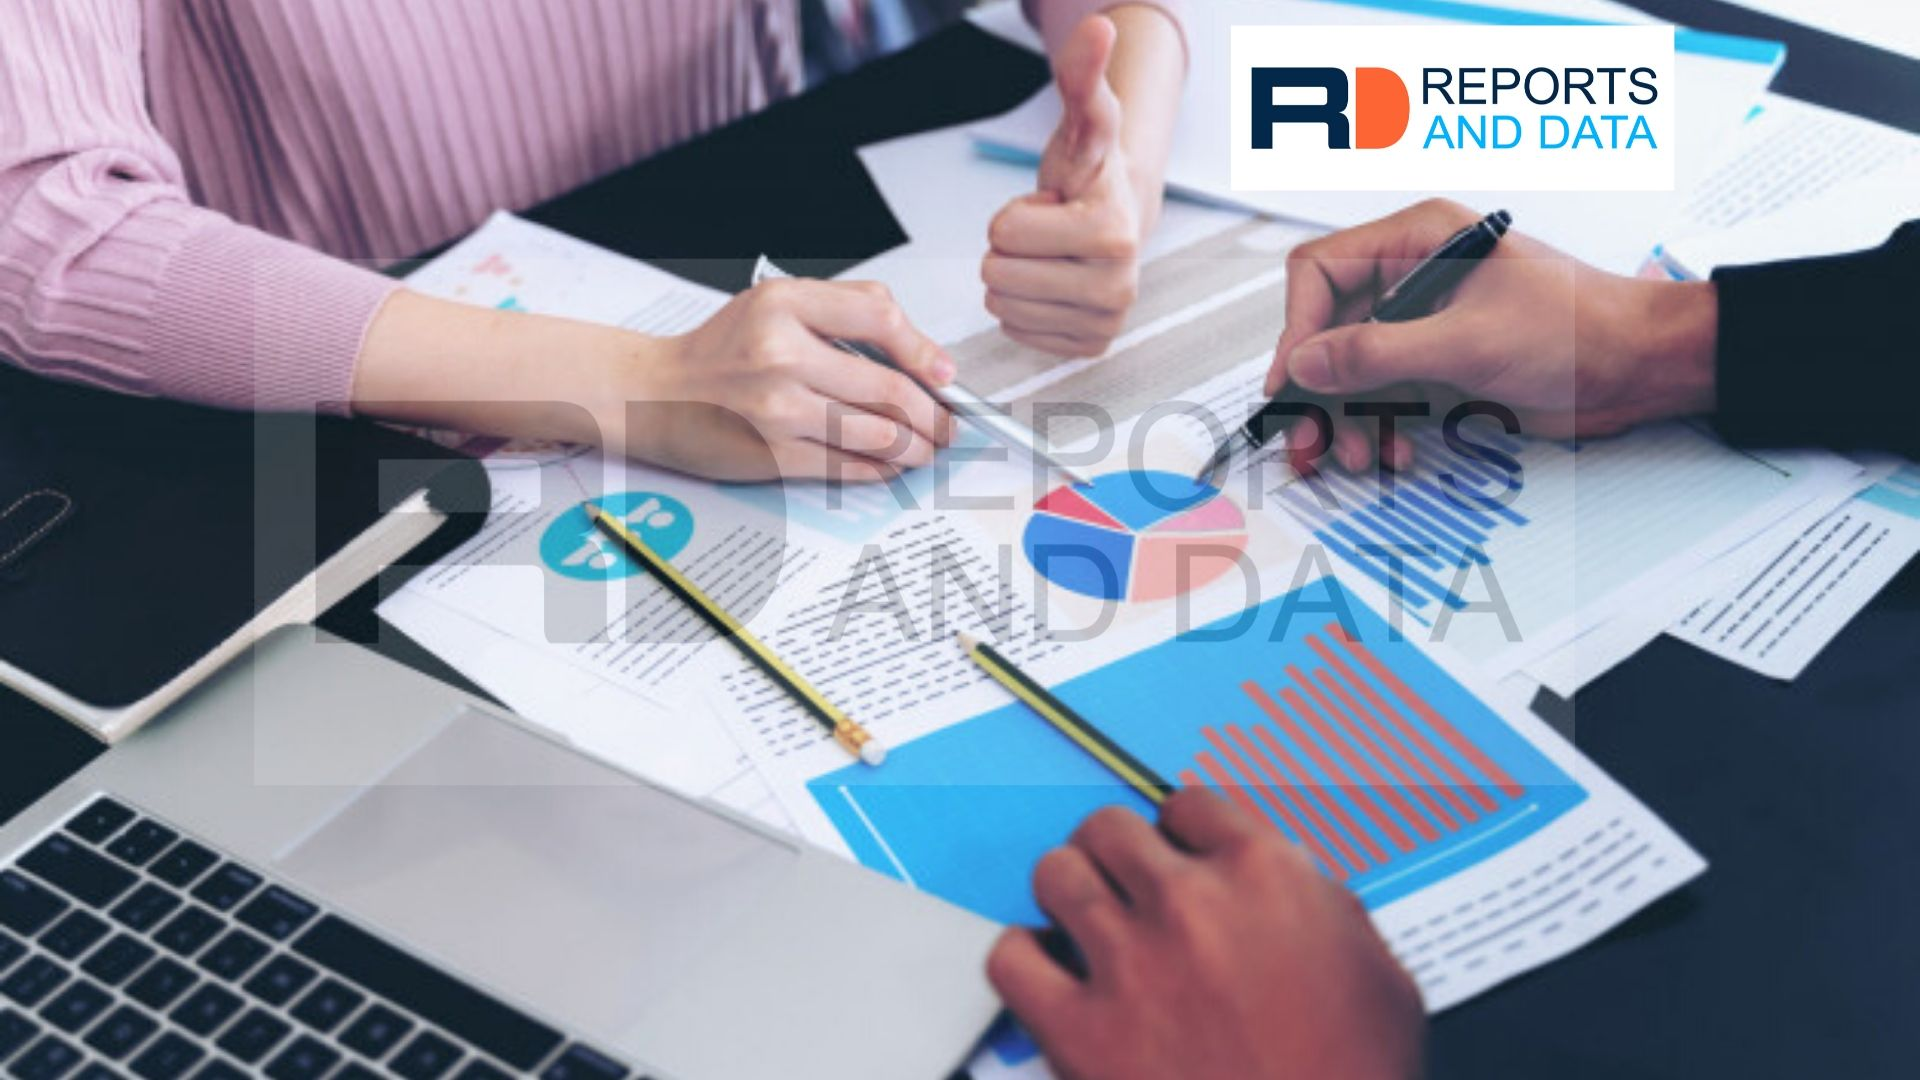 Cognitive Assessment And Training Market Cost Structure, Key Players, Supply Chain relationship and Forecasts to 2027